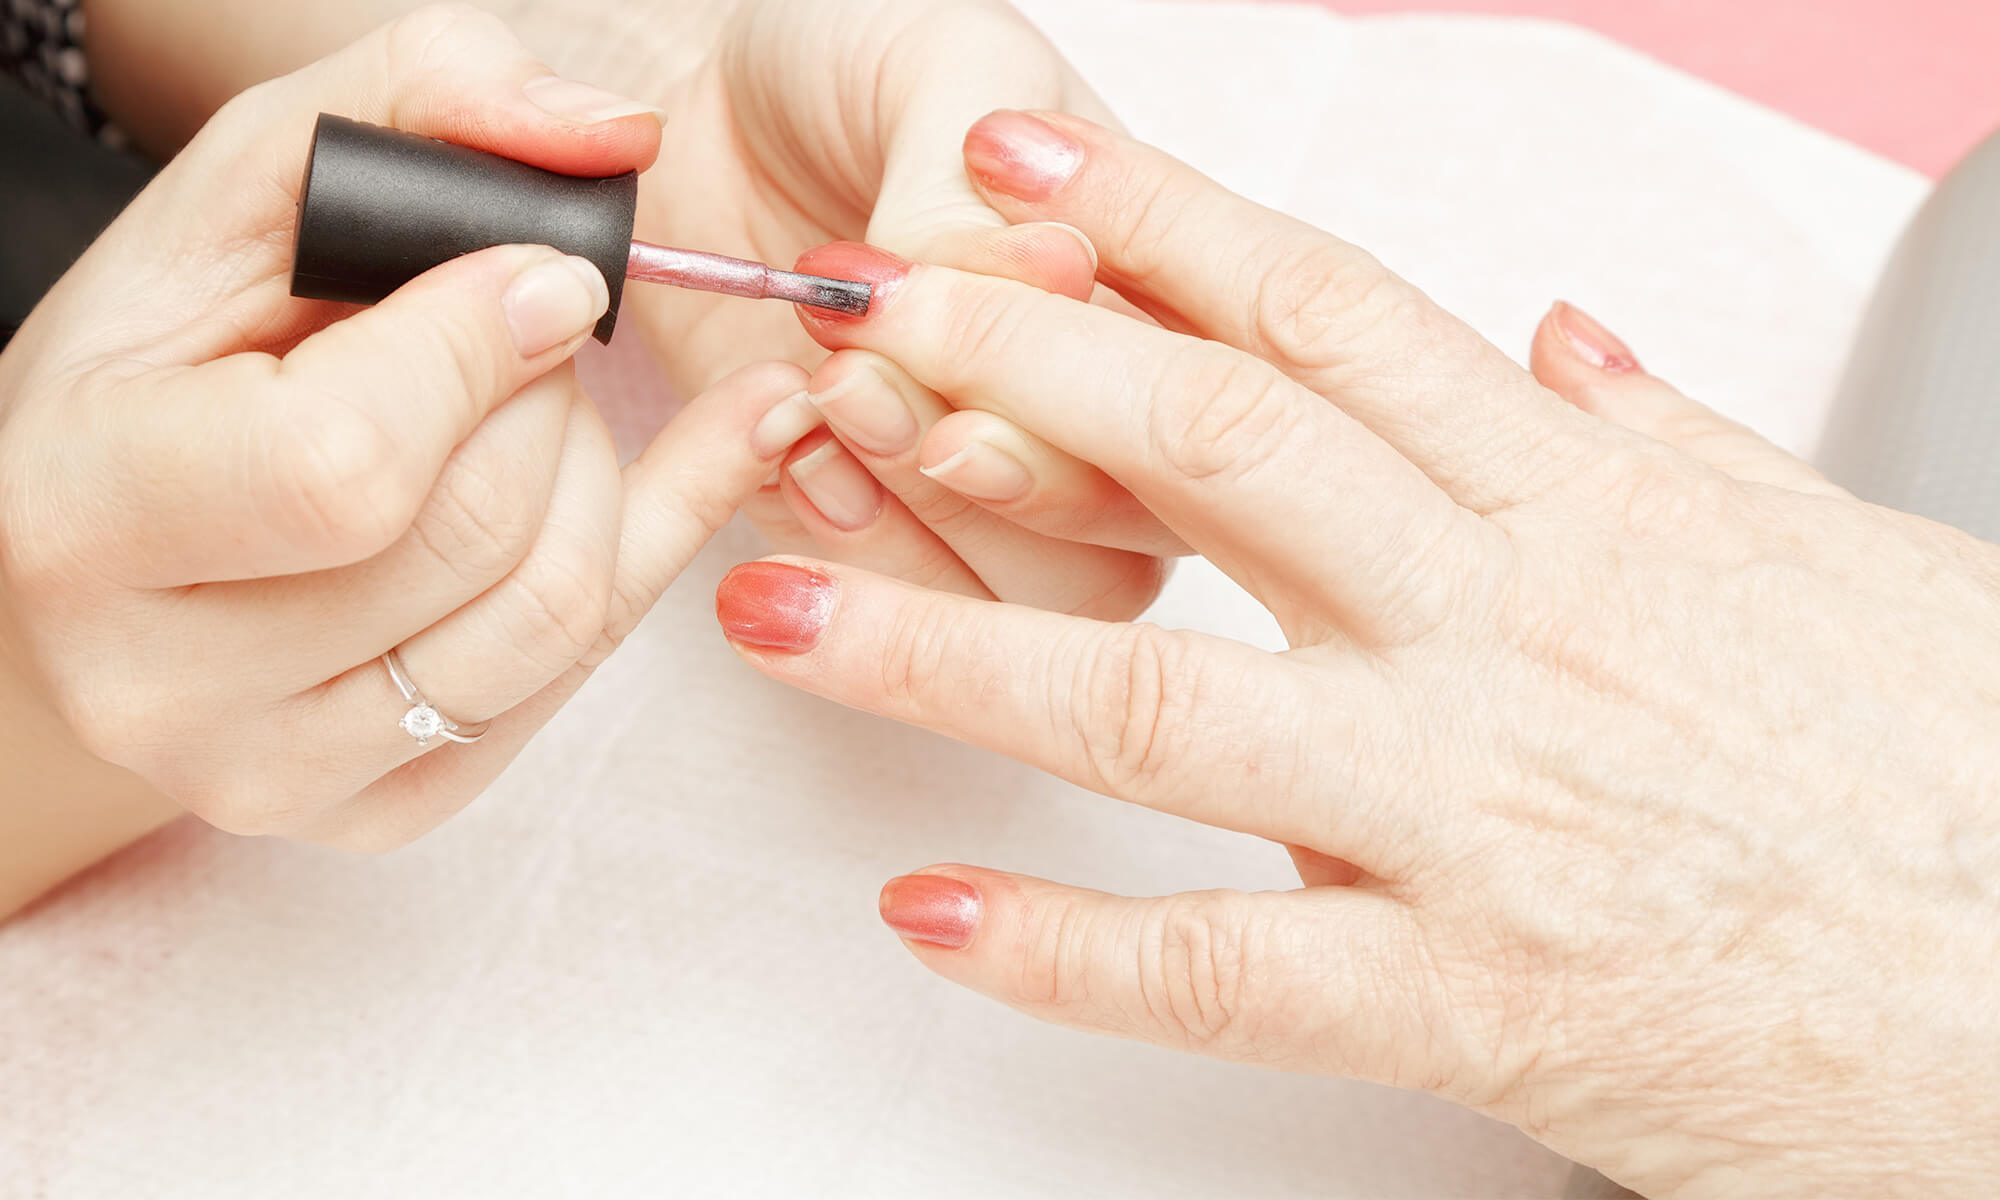 Retiree getting manicure